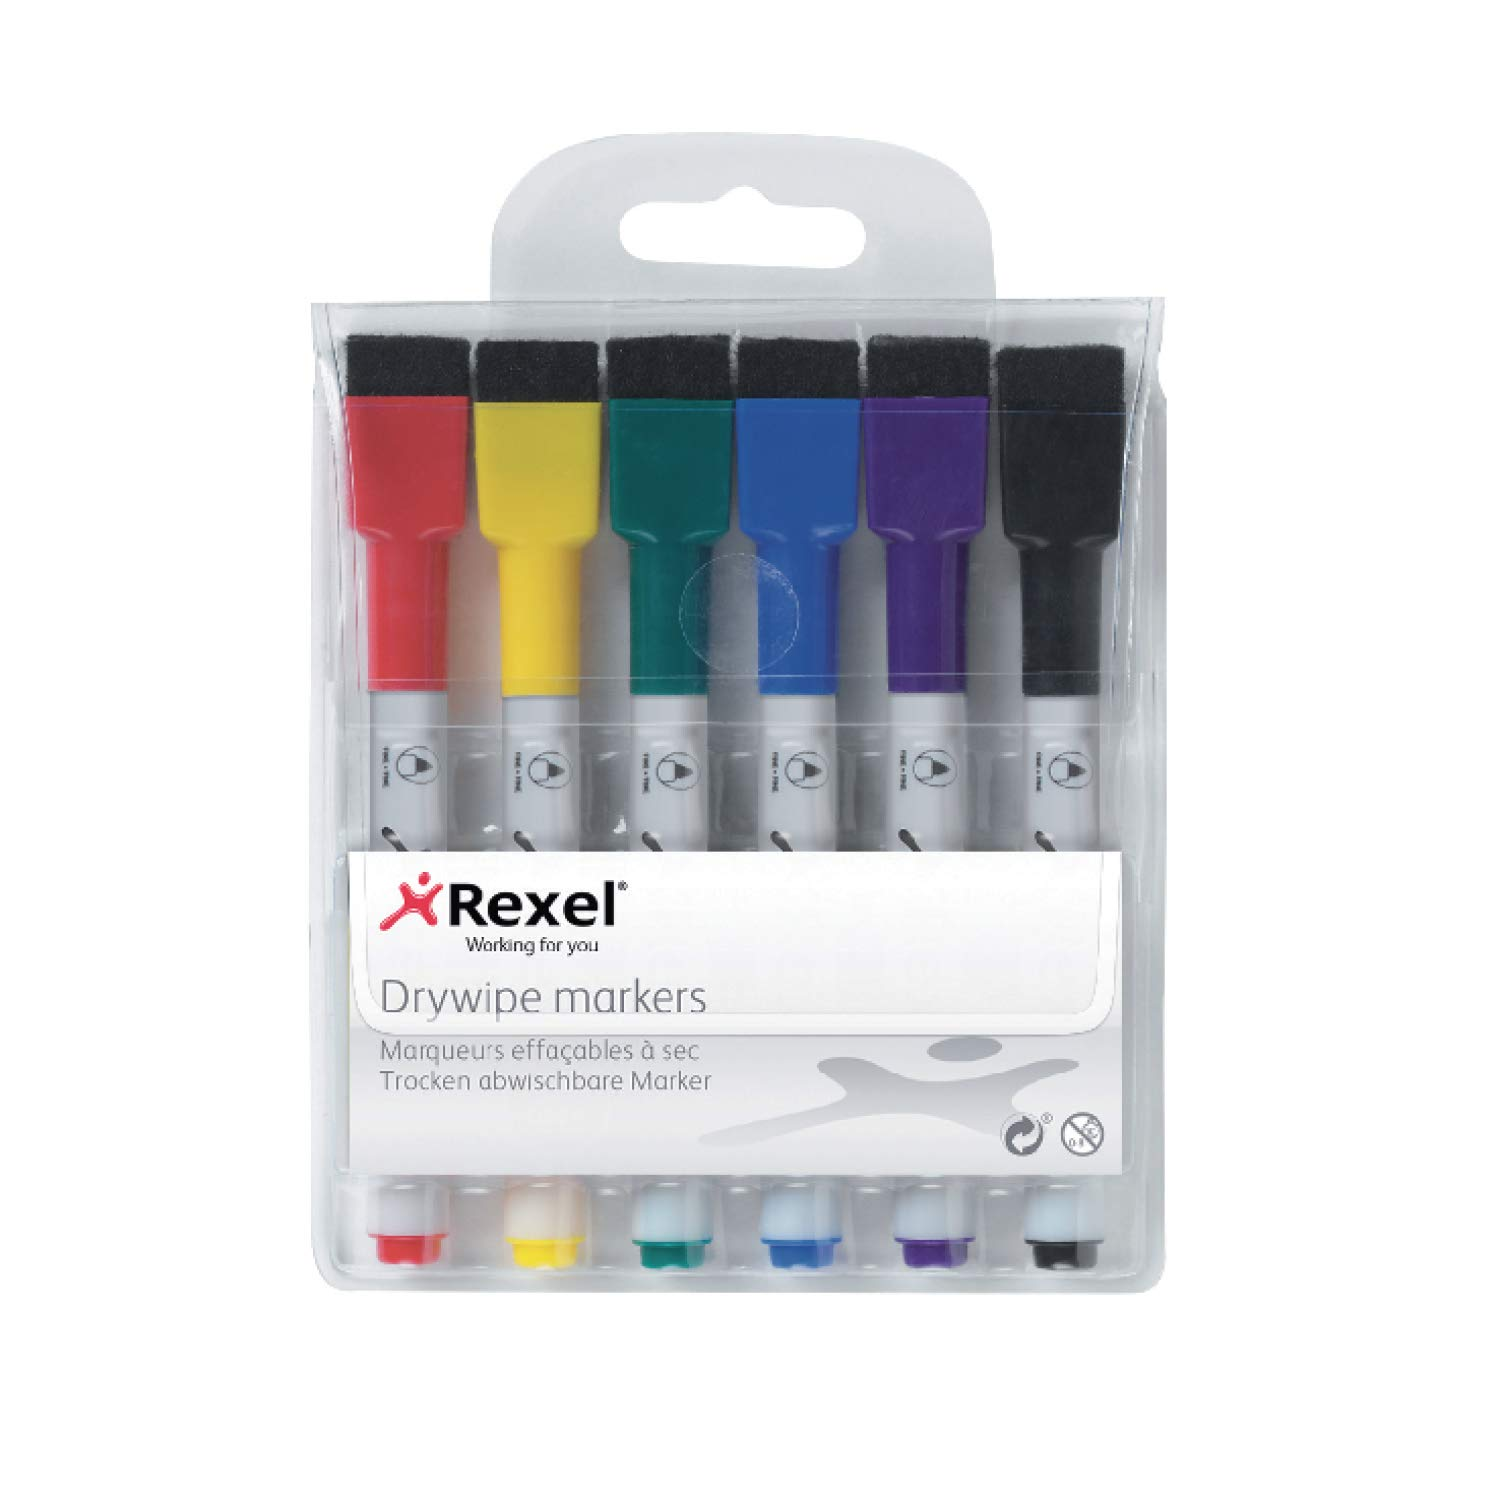 Rexel Dry Erase Markers, Pack of 6, Assorted Colours, 1903792